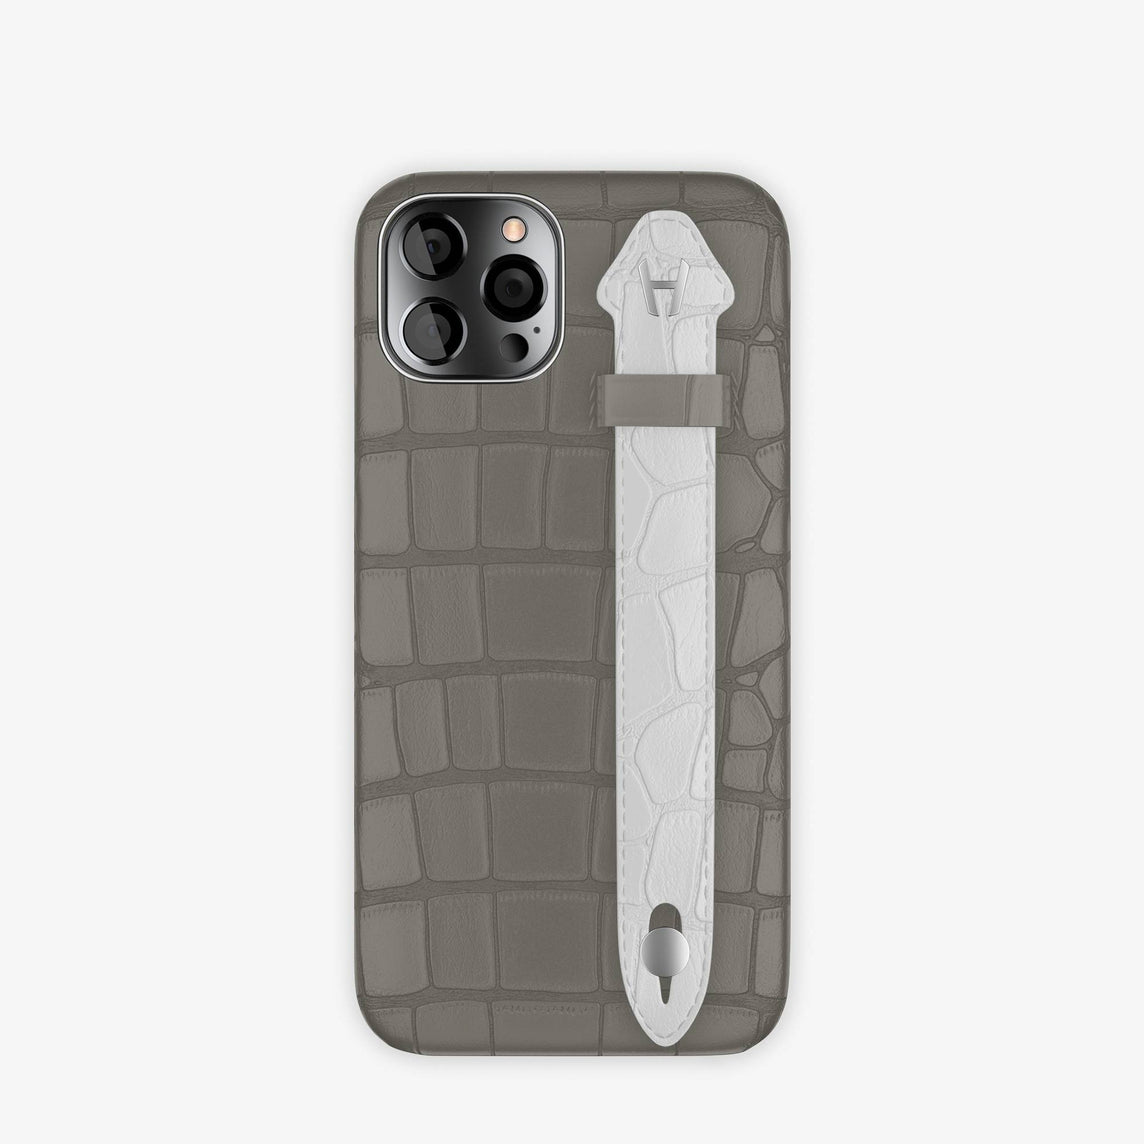 Alligator Side Finger Case iPhone 12 & iPhone 12 Pro | Grey Pearl/White -Stainless Steel